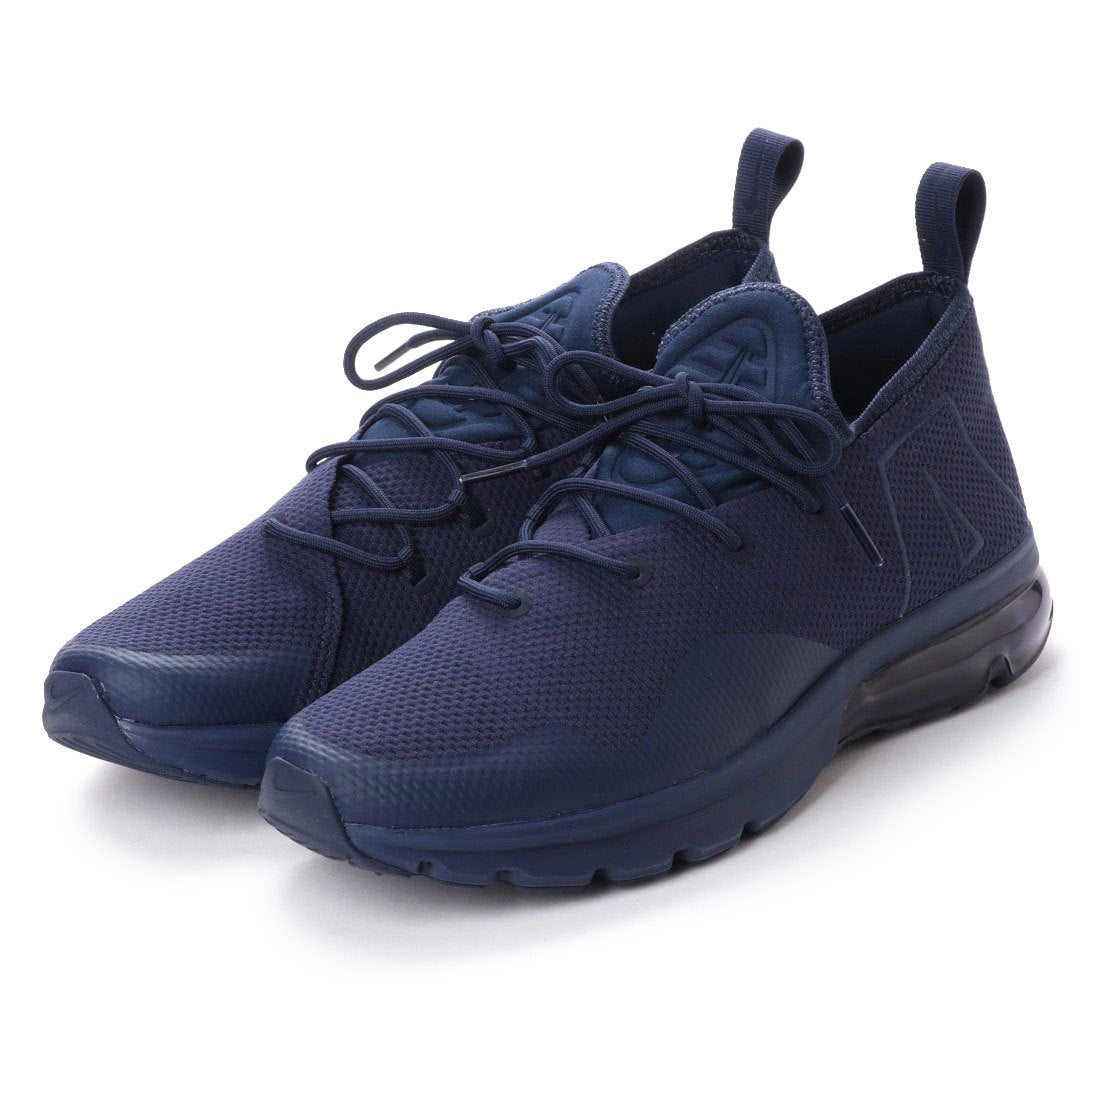 【SALE 15%OFF】ナイキ NIKE atmos AIR MAX FLAIR 50 (NAVY) レディース メンズ